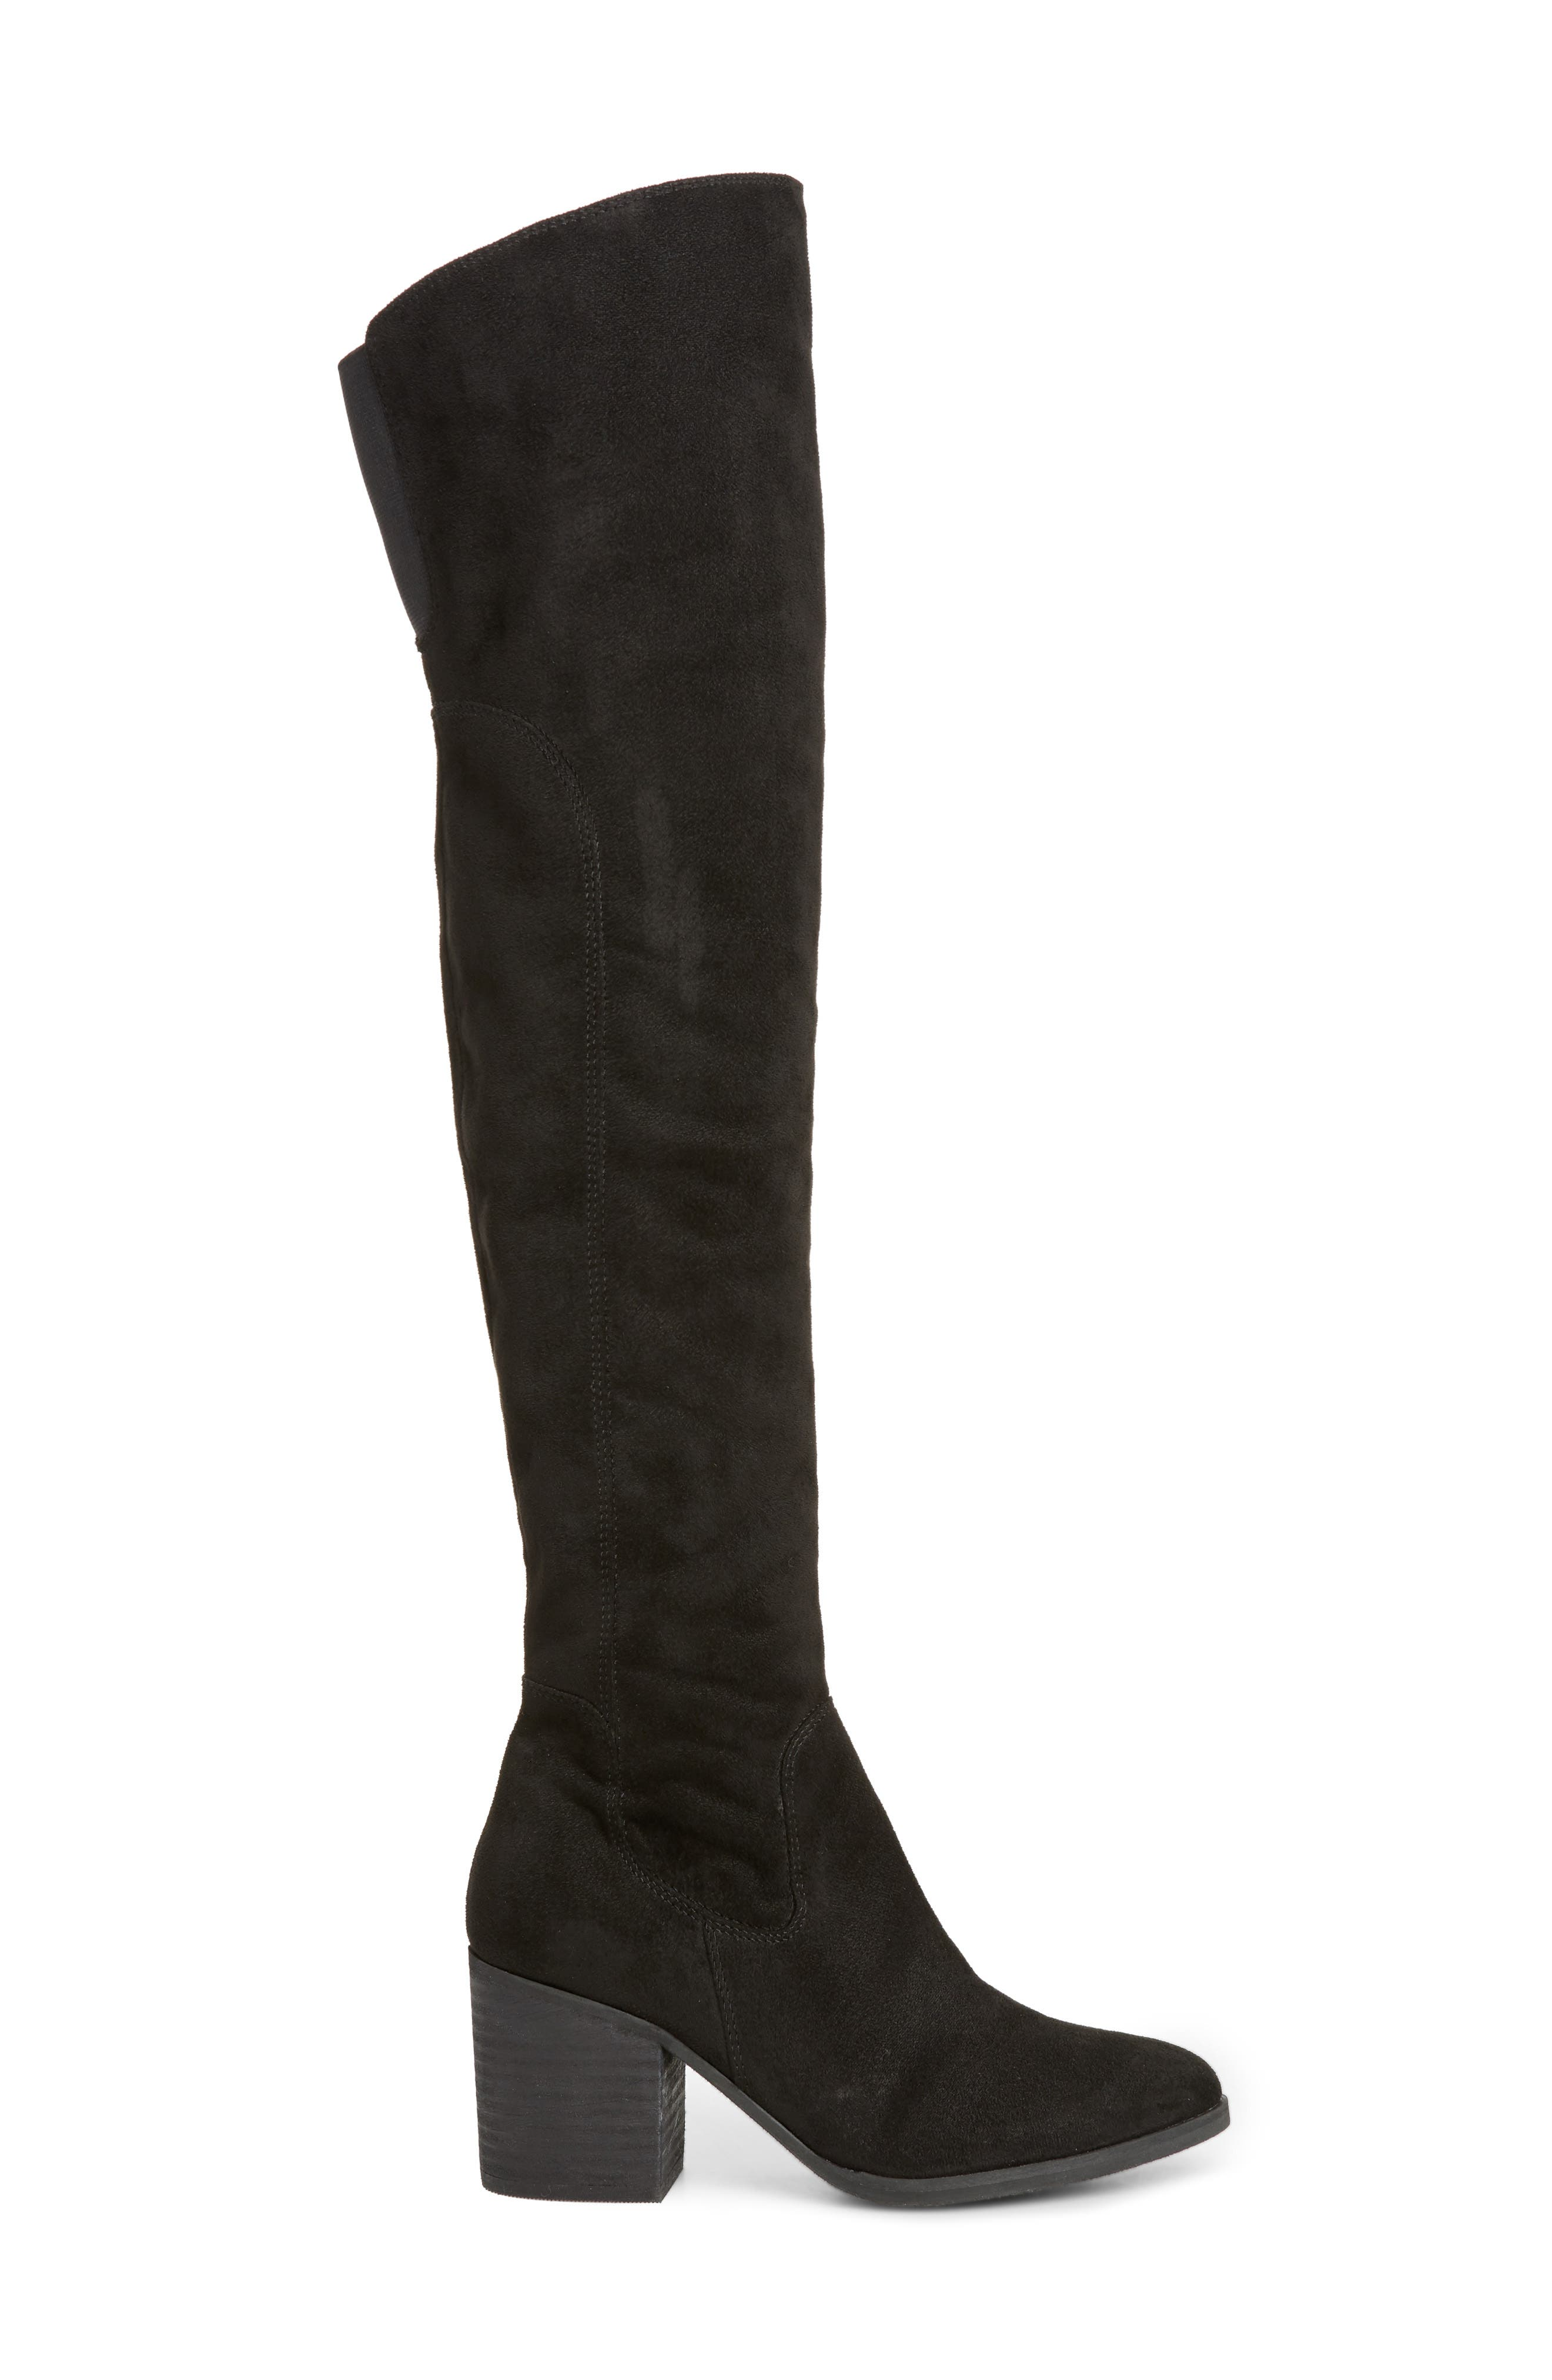 Logan Over the Knee Boot,                             Alternate thumbnail 3, color,                             001